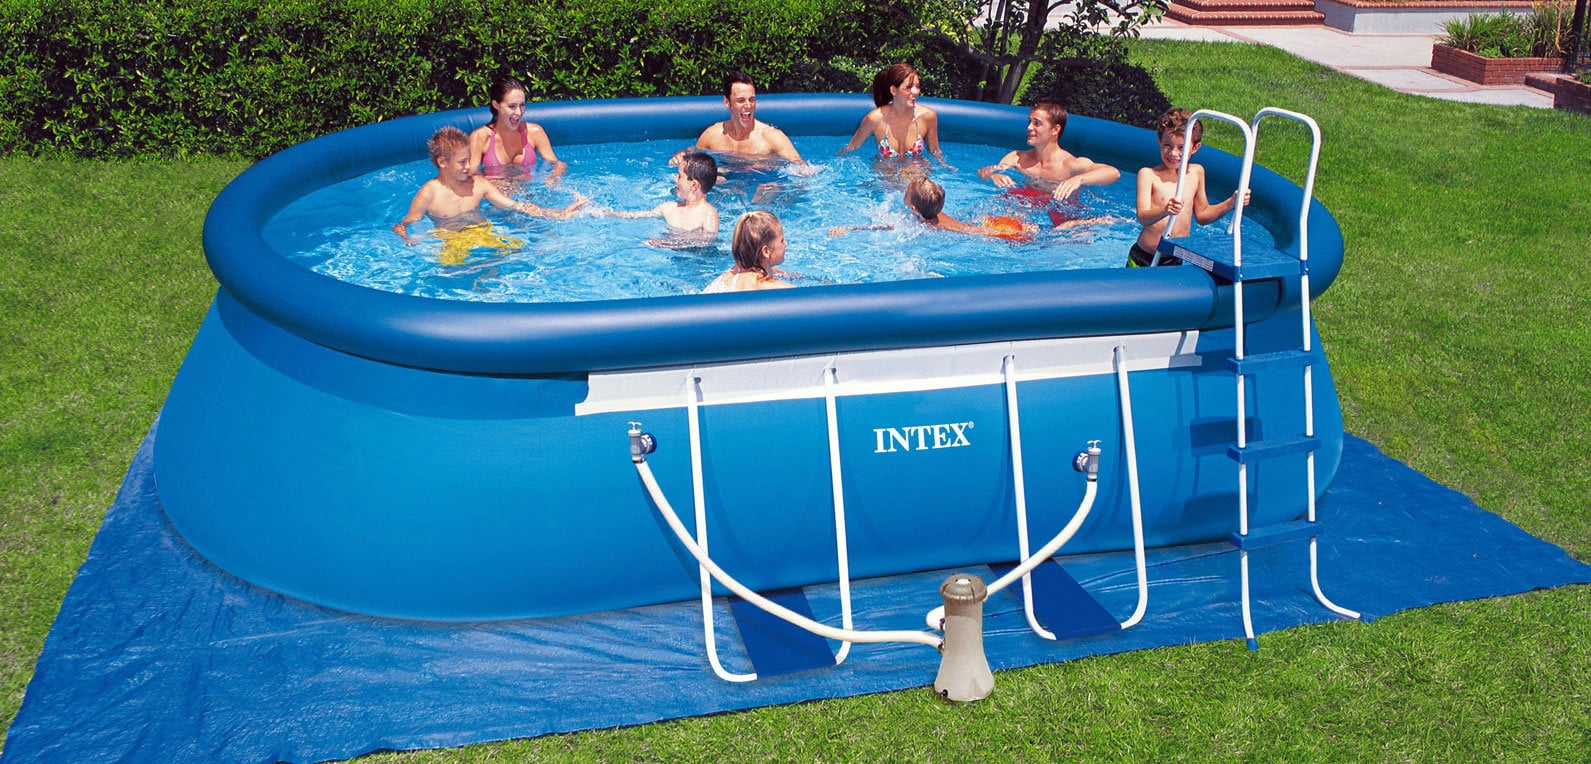 Solarplane Pool Intex 305 Intex Ersatzteile Frame Pool Oval 549 X 305 X 107 Cm